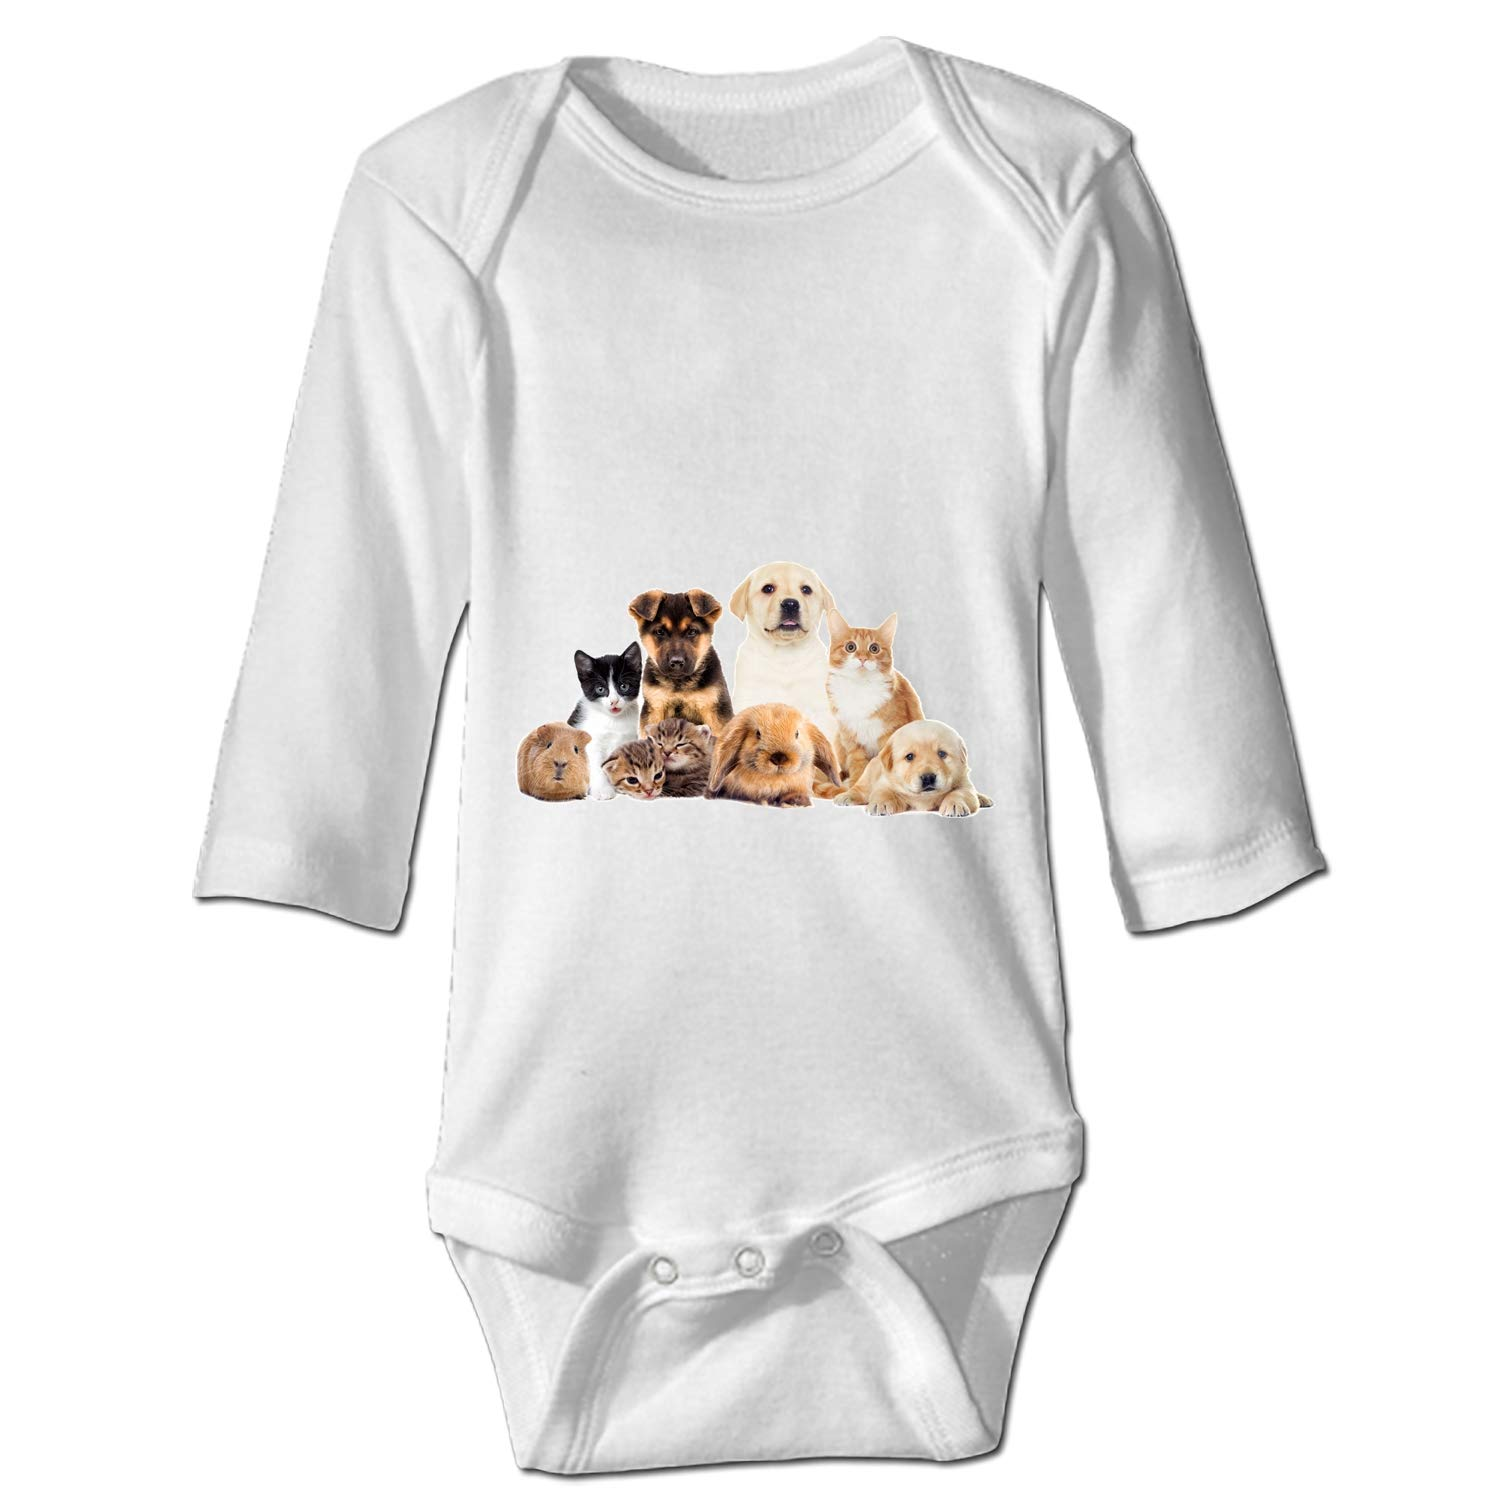 KuLuKo Animal Family Baby Sports Bodysuit Jumpsuit